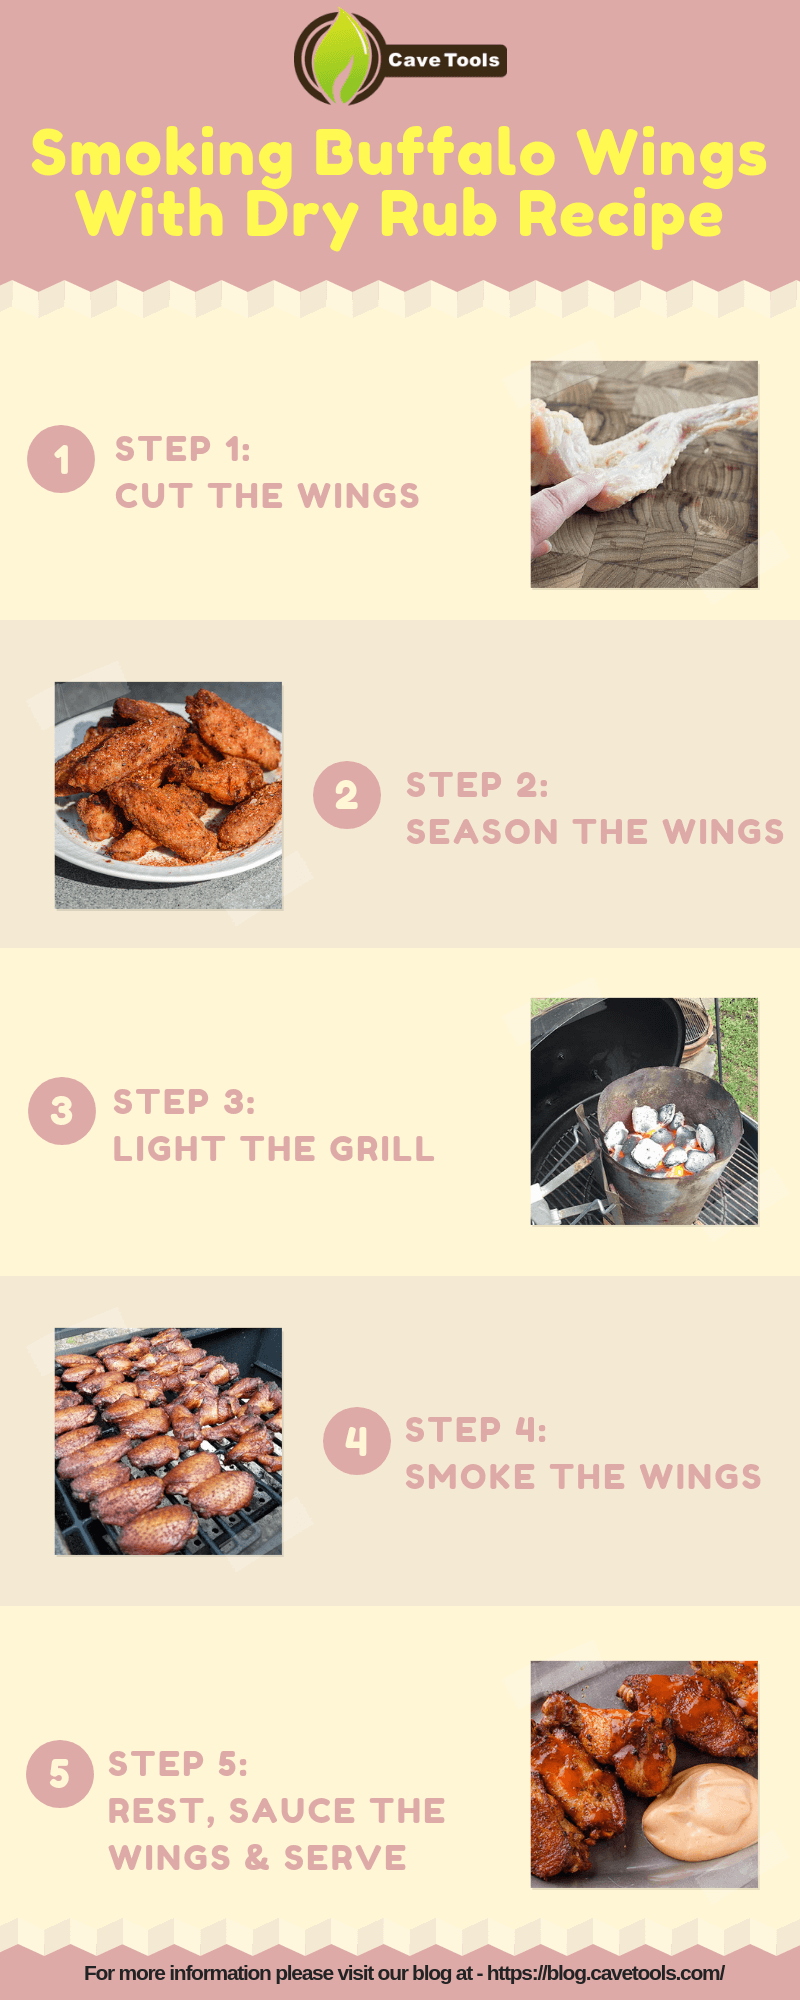 Smoking Buffalo Wings With Dry Rub Recipe